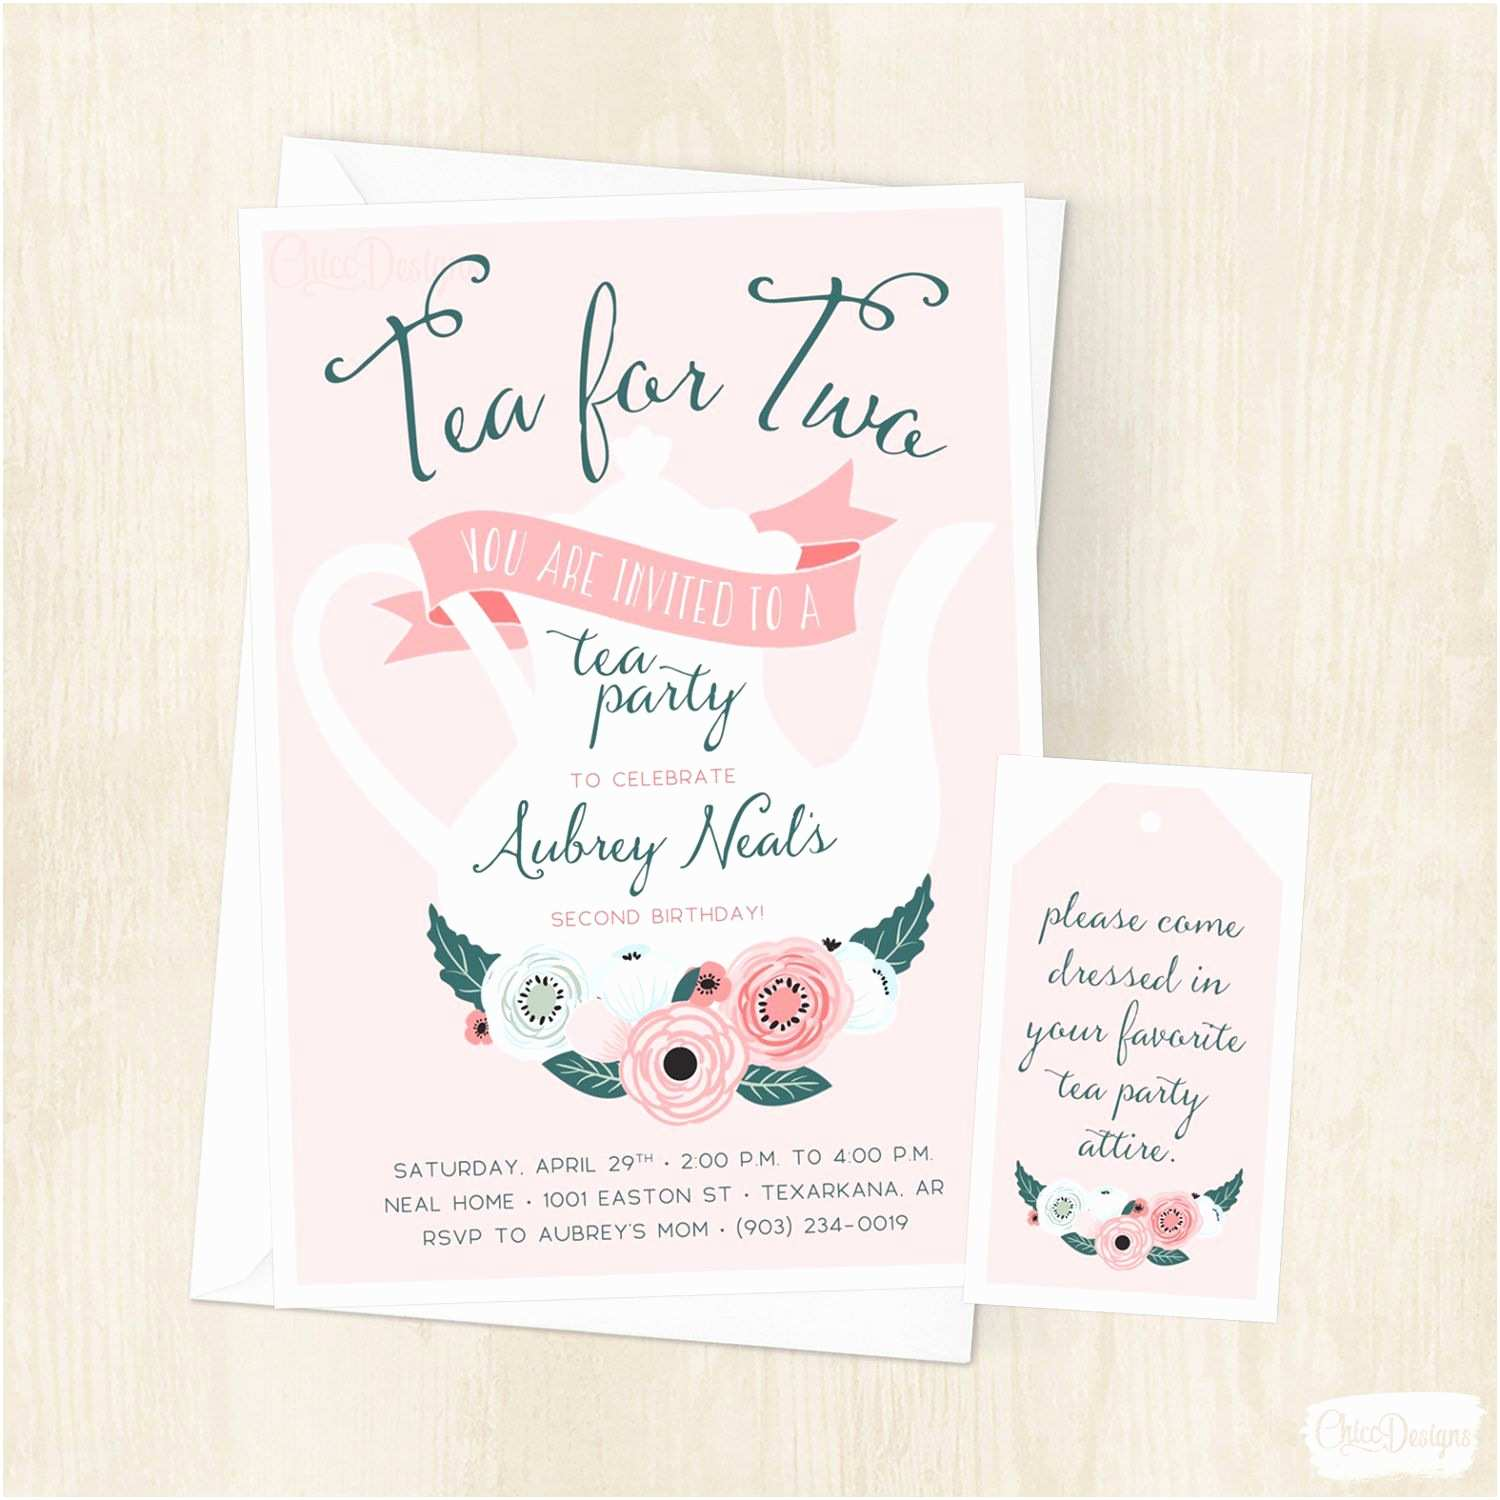 Tea Party Invitations Tea for Two Birthday Invitation Little Girls Tea Party